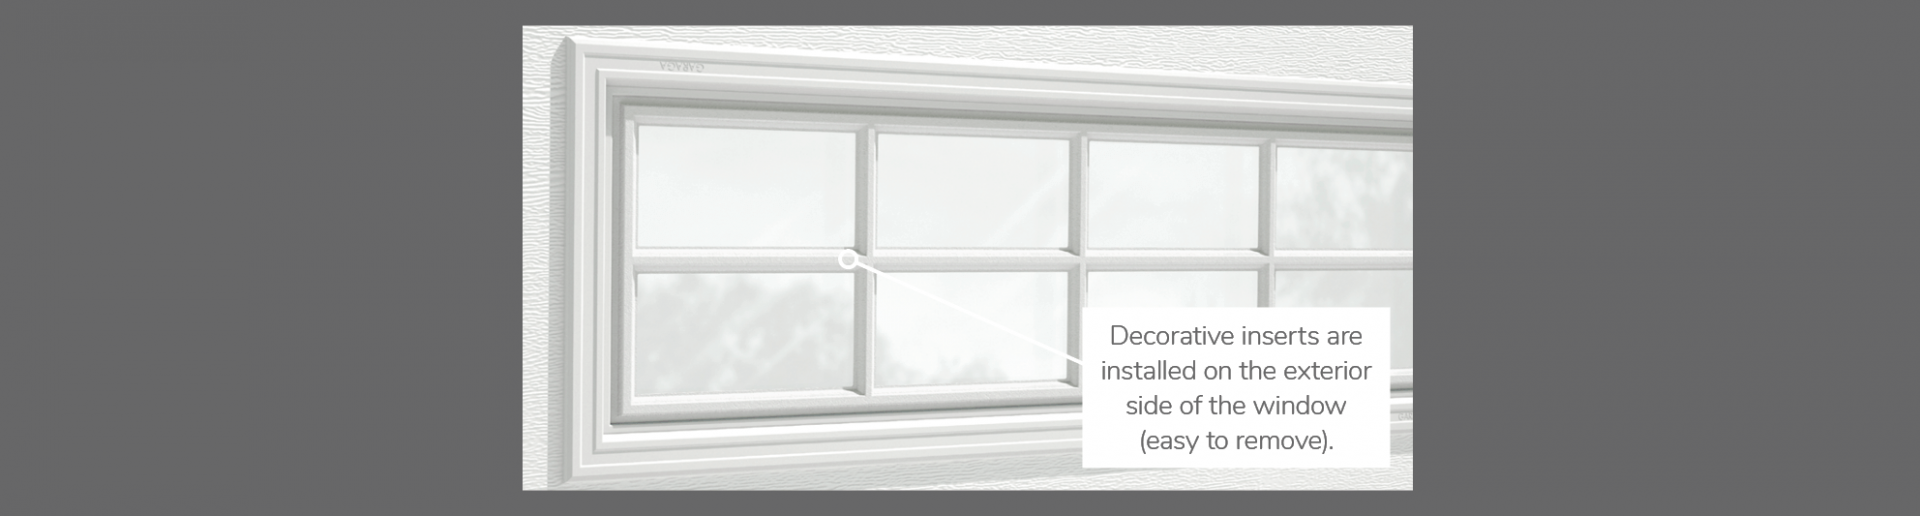 "Stockton Decorative Insert, 41"" x 16"", available for door 3 layers - Polystyrene, 2 layers - Polystyrene and Non-insulated"